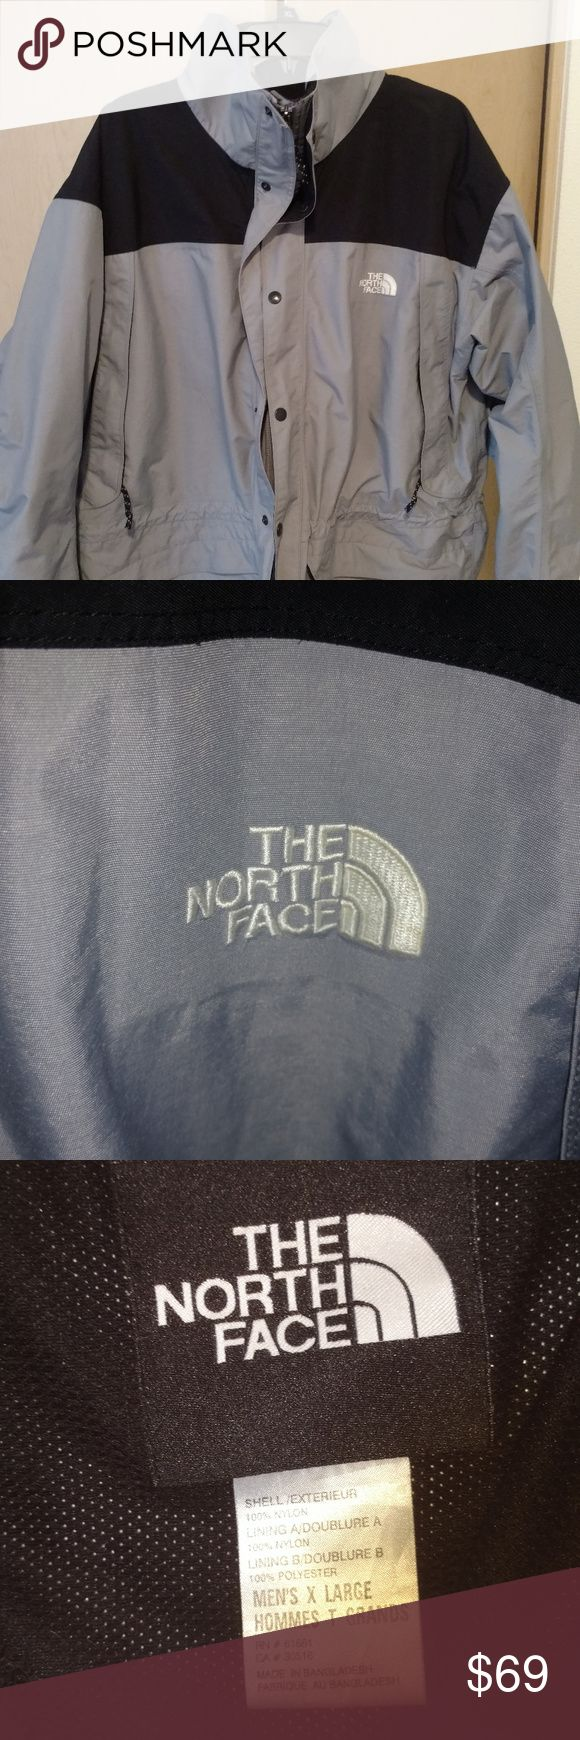 The North Face HyVent Men's Size XL Jacket With Ho This The North Face jacket is in good condition, it comes with a hood and is HyVent. The knitting near the label has an opening. The North Face Jackets & Coats Ski & Snowboard